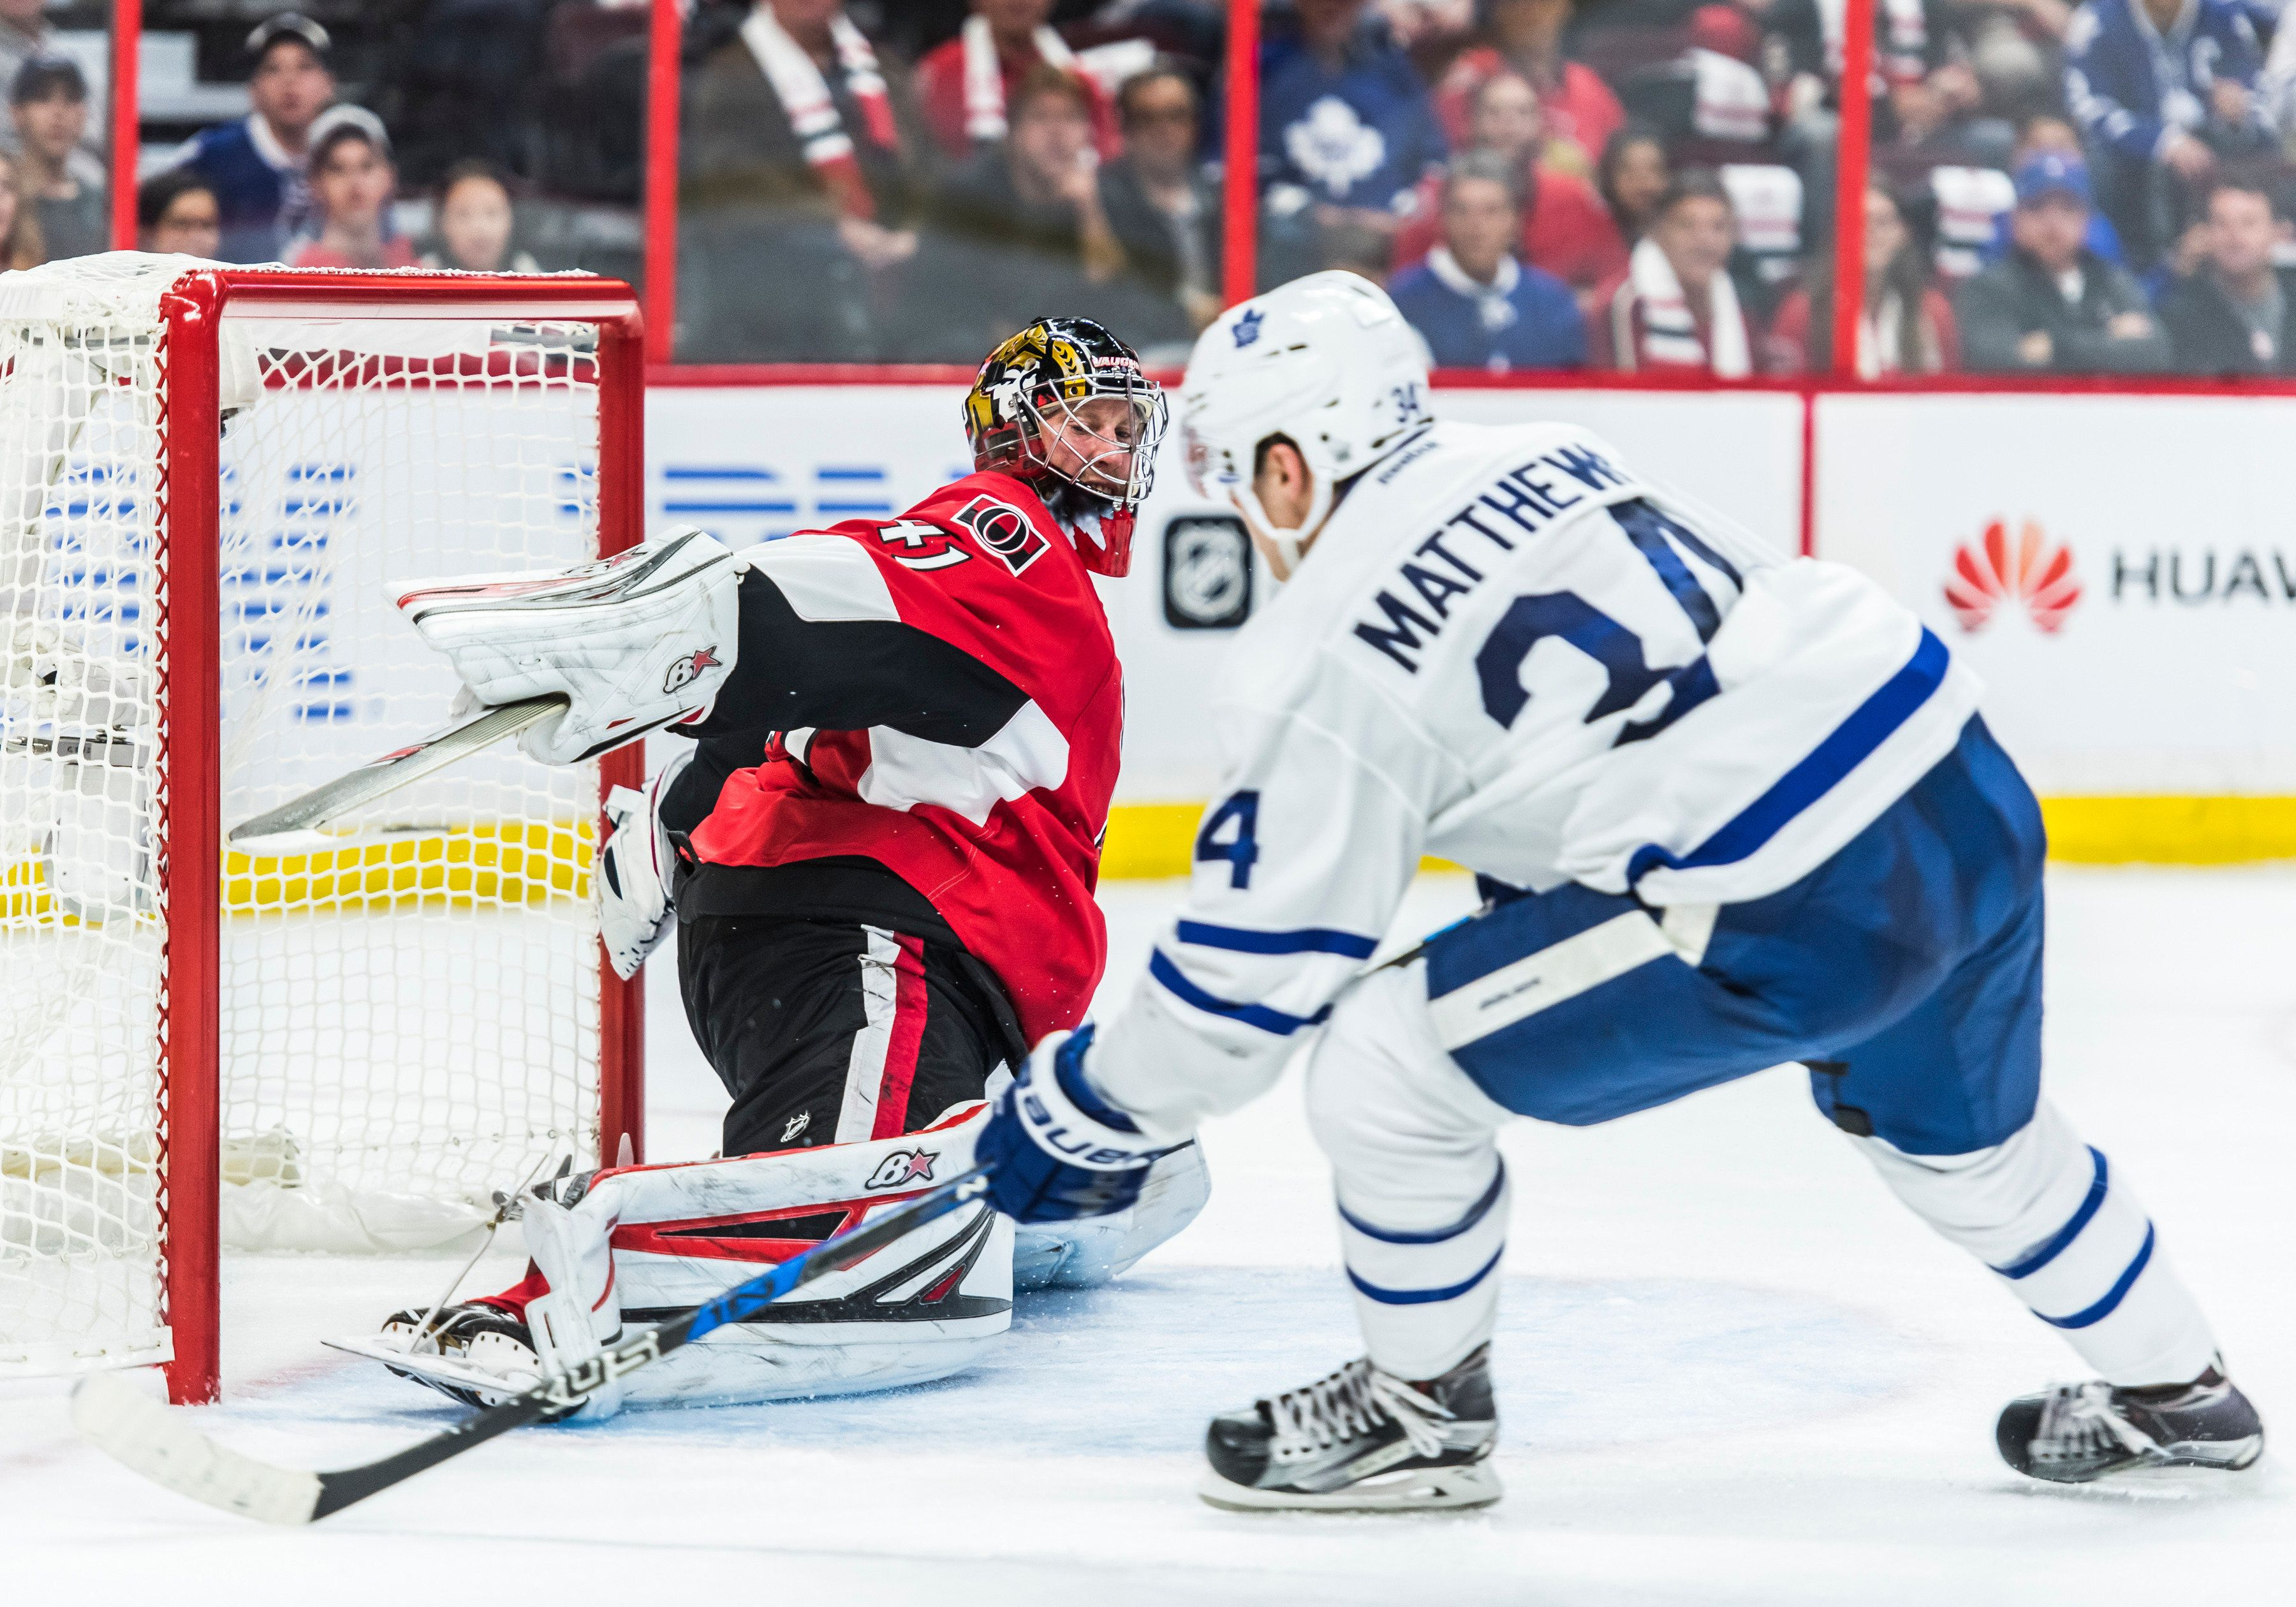 October 12, 2016: Toronto Maple Leafs Center Auston Matthews (34) scores a goal during the NHL game between the Ottawa Senators and the Toronto Maple Leafs at Canadian Tires Centre in Ottawa, Ontario, Canada. (Photo by Steve Kingsman/Icon Sportswire via Getty Images)